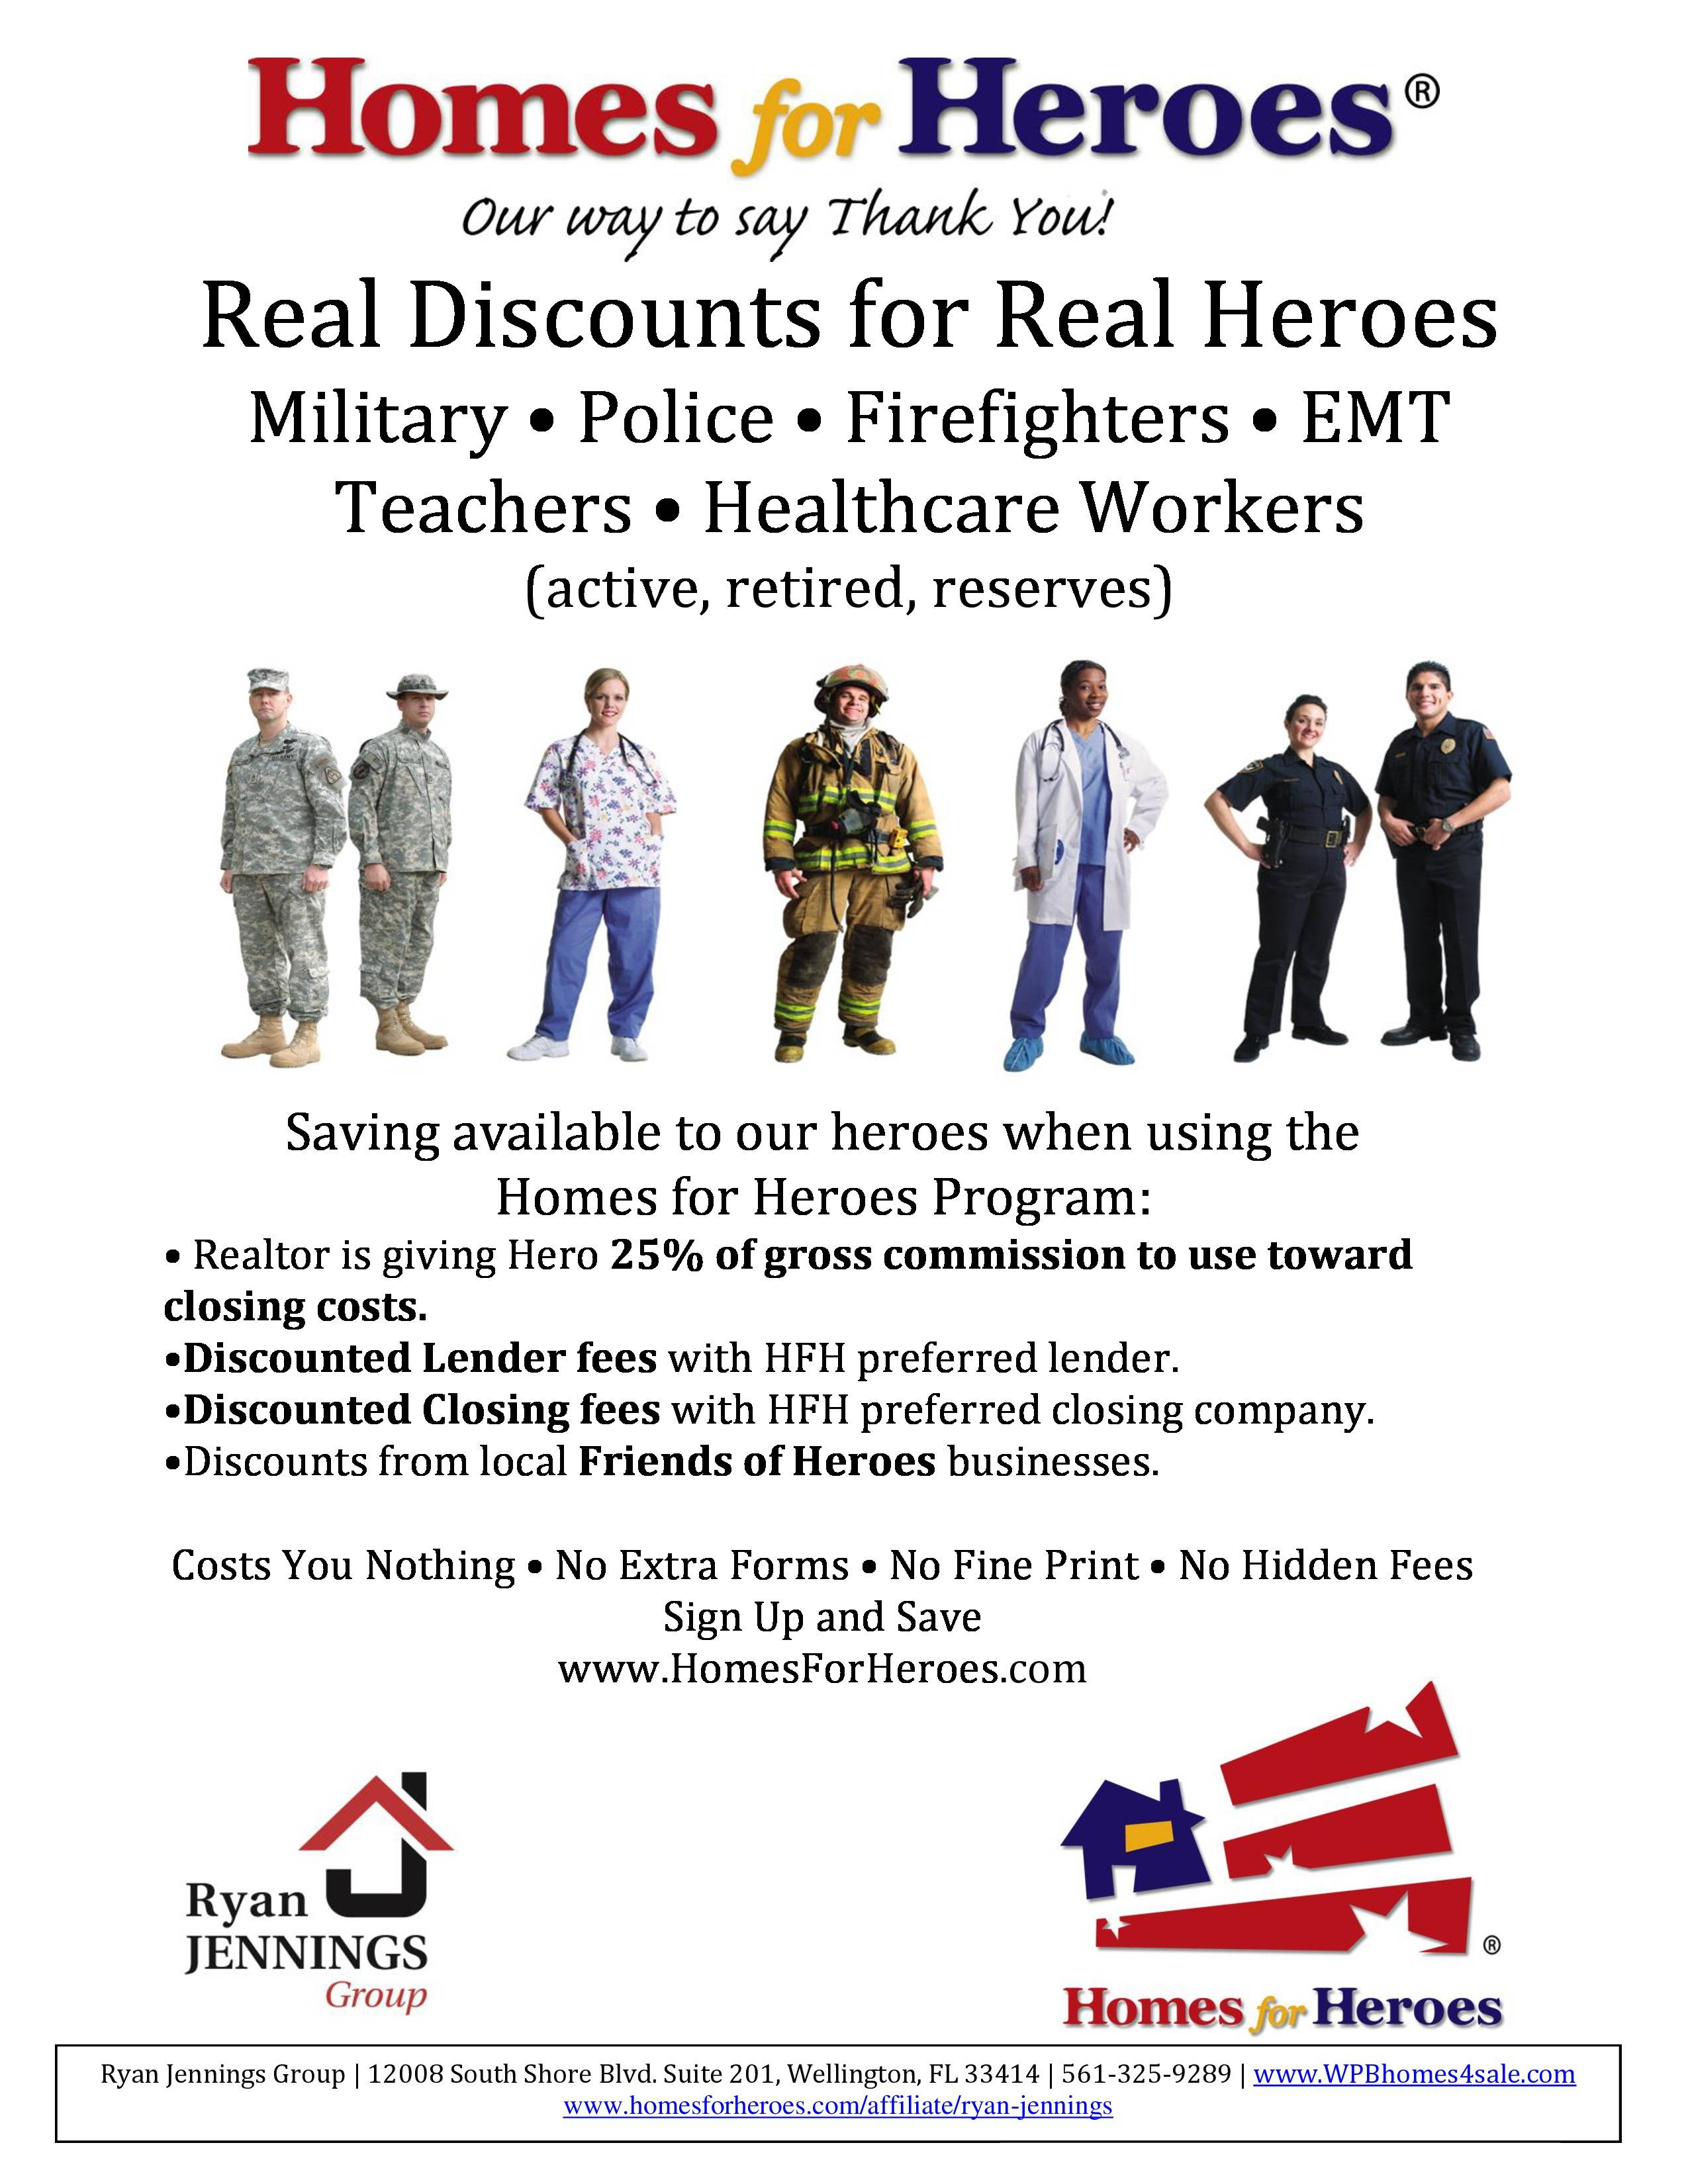 Homes For Heroes Housing Program That Saves You Money